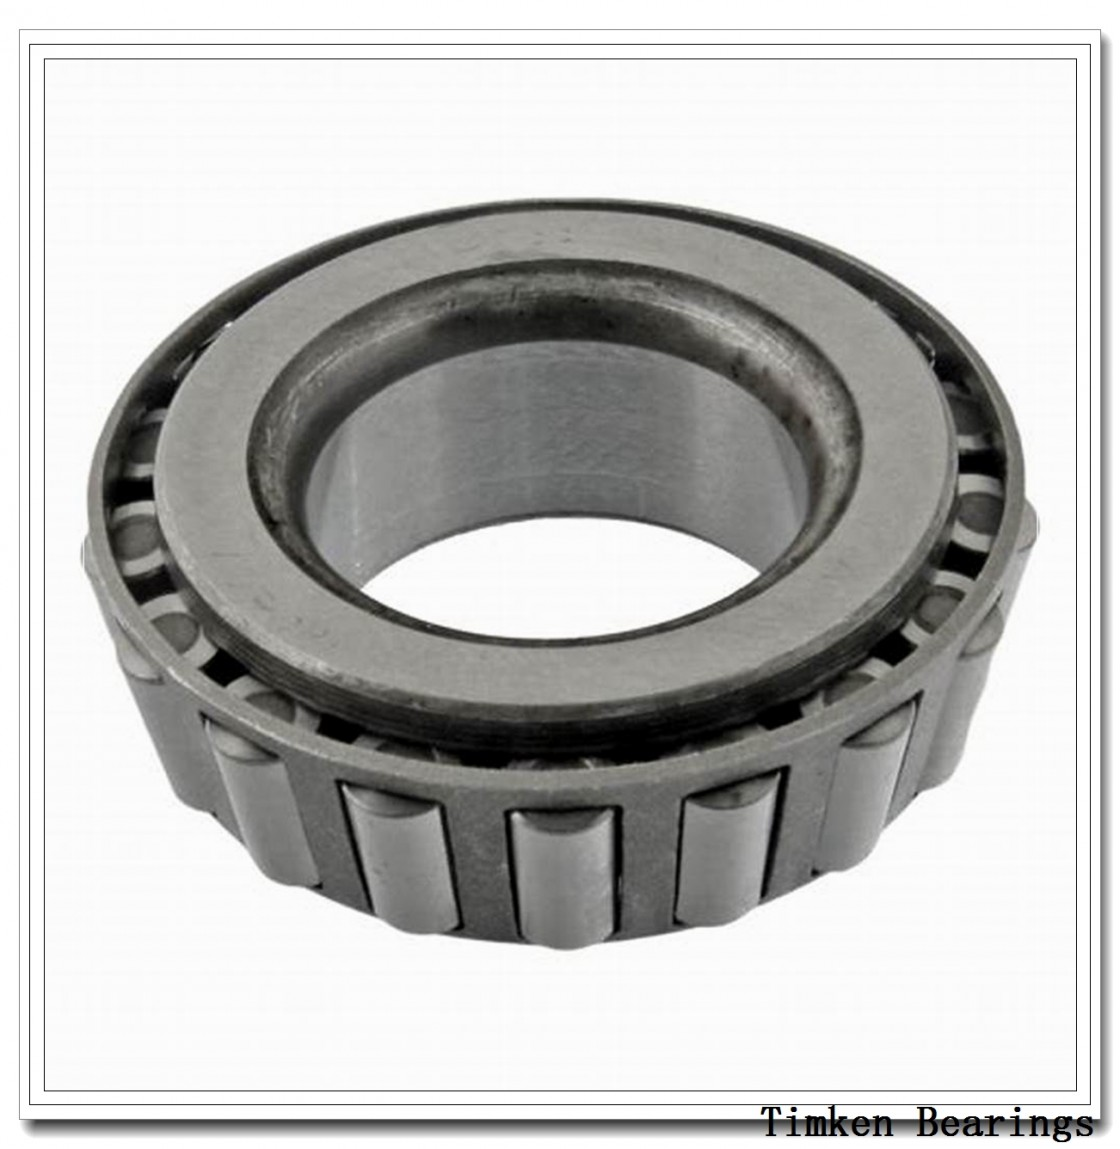 300 mm x 480 mm x 67 mm  Timken 300RN51 Timken Bearings